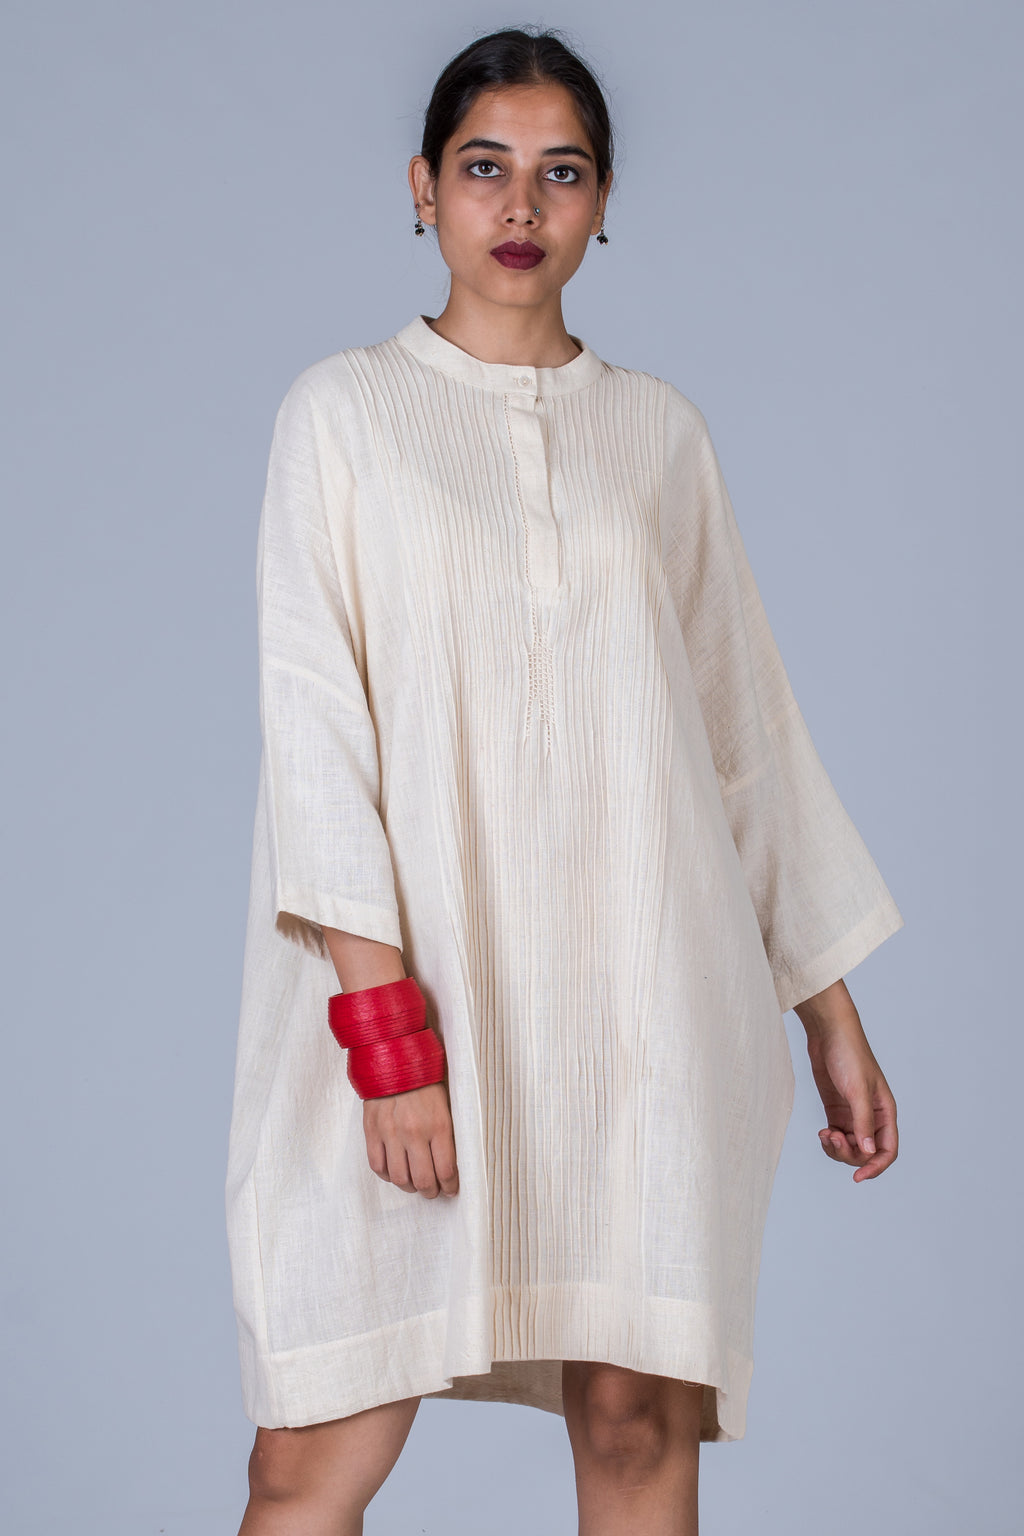 Off White Desi Cotton Dress - MUKTA - Upasana Design Studio